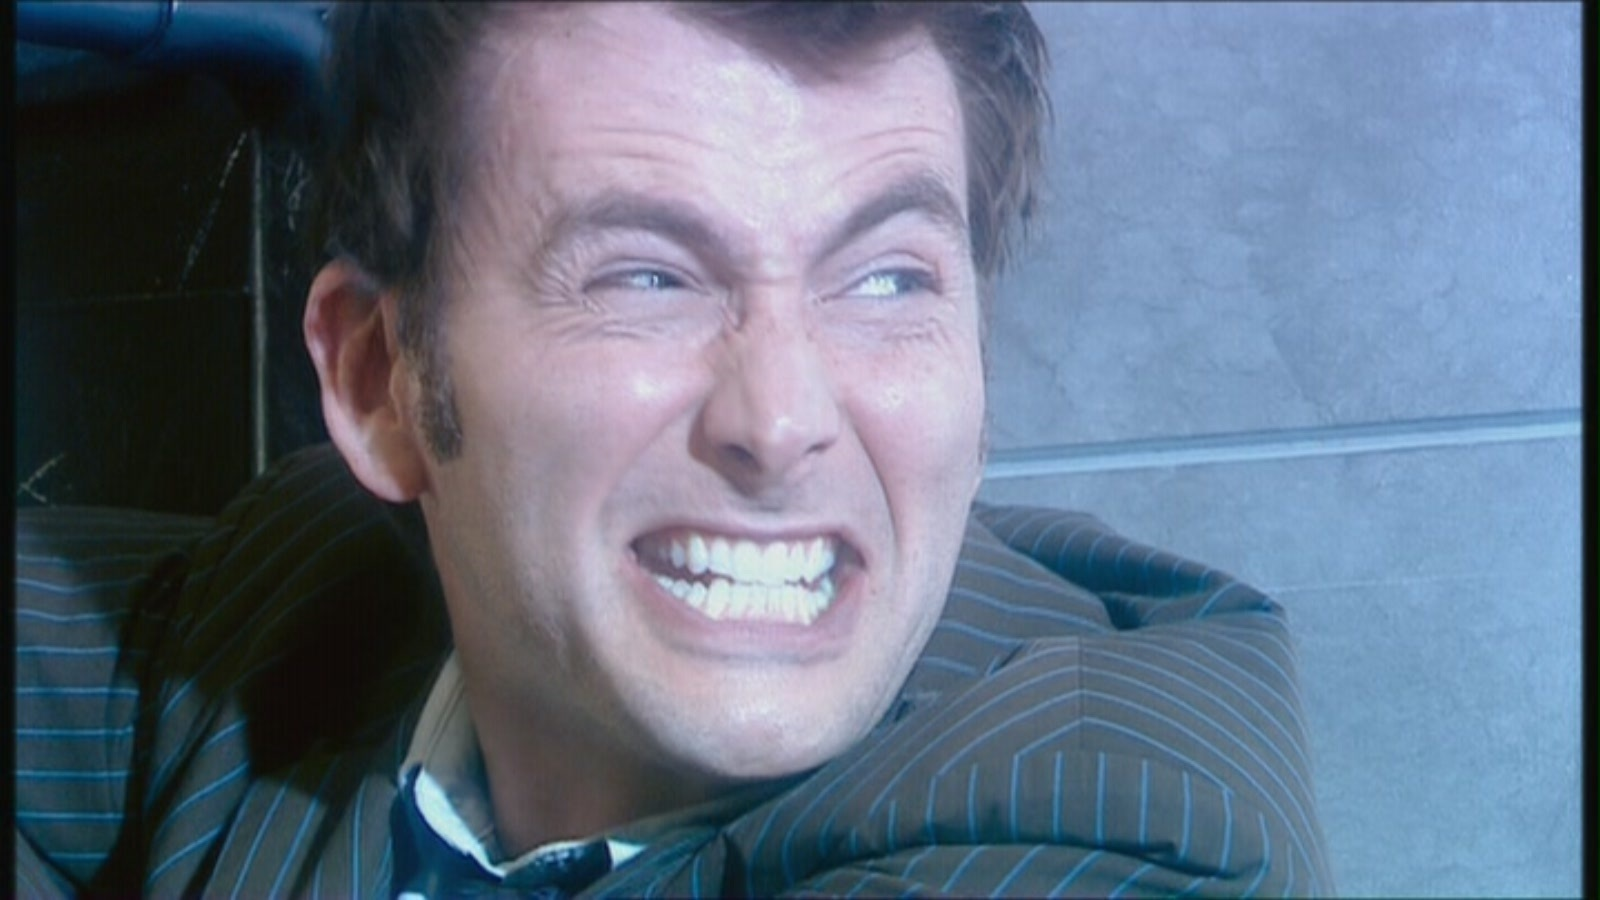 Doctor Who Doomsday Gif Doctor Who 2x13 Doomsday